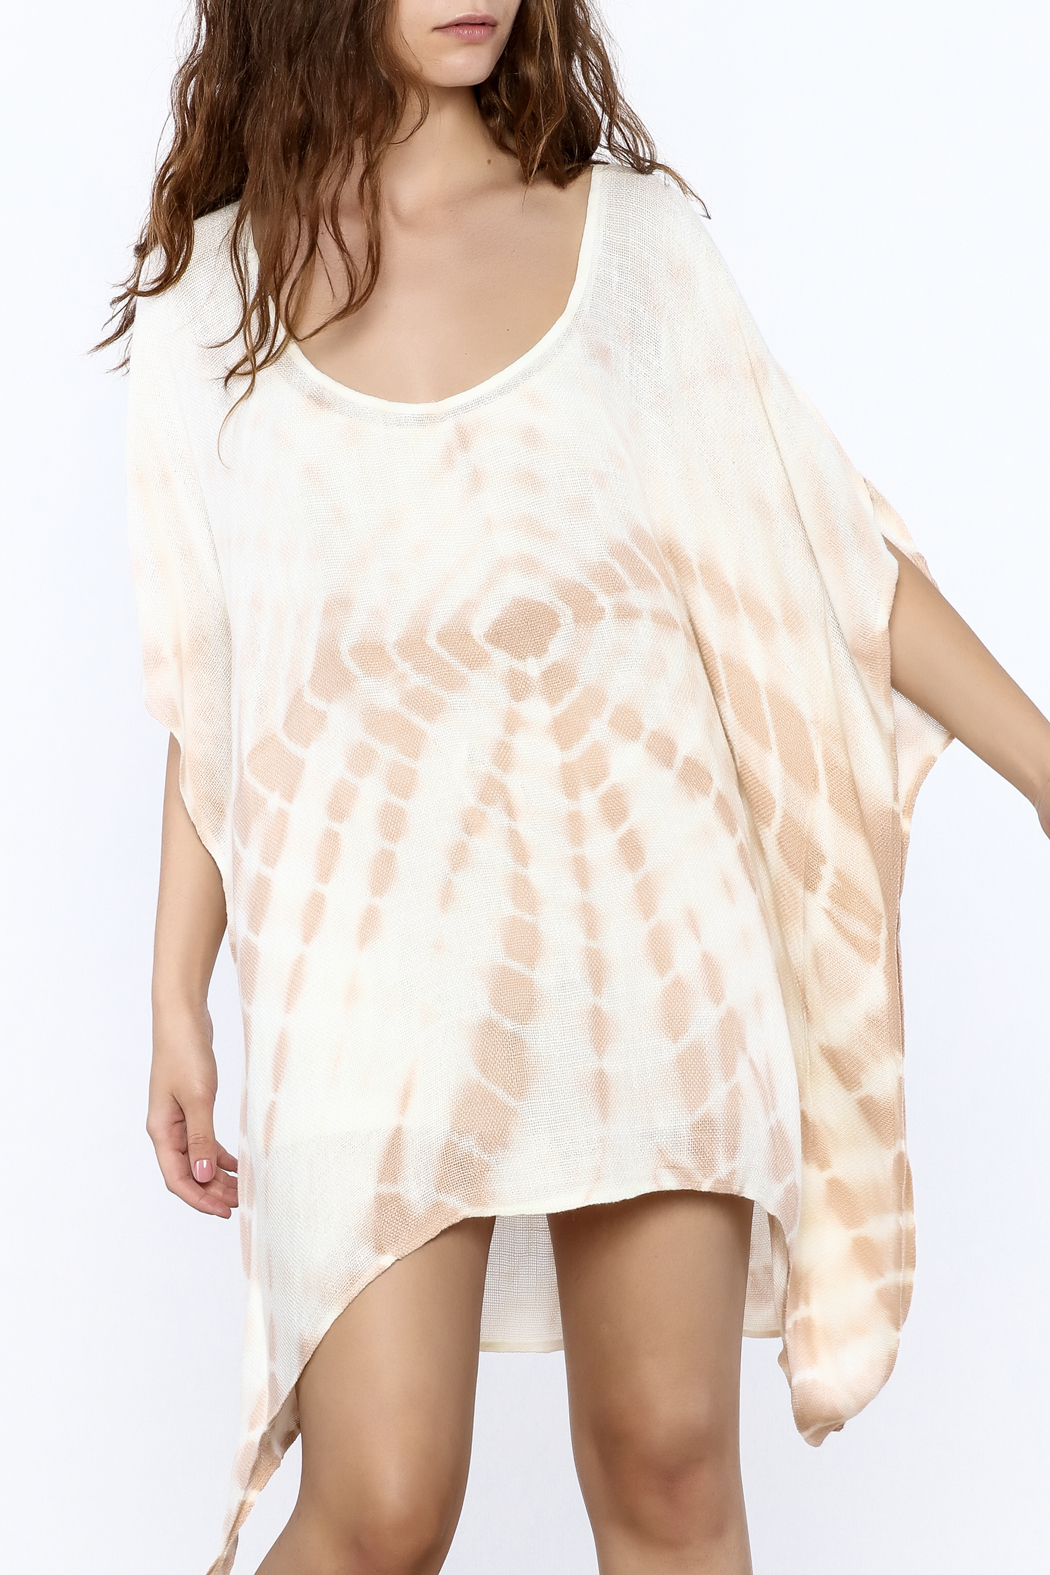 Elan Tan Tunic Dress - Main Image